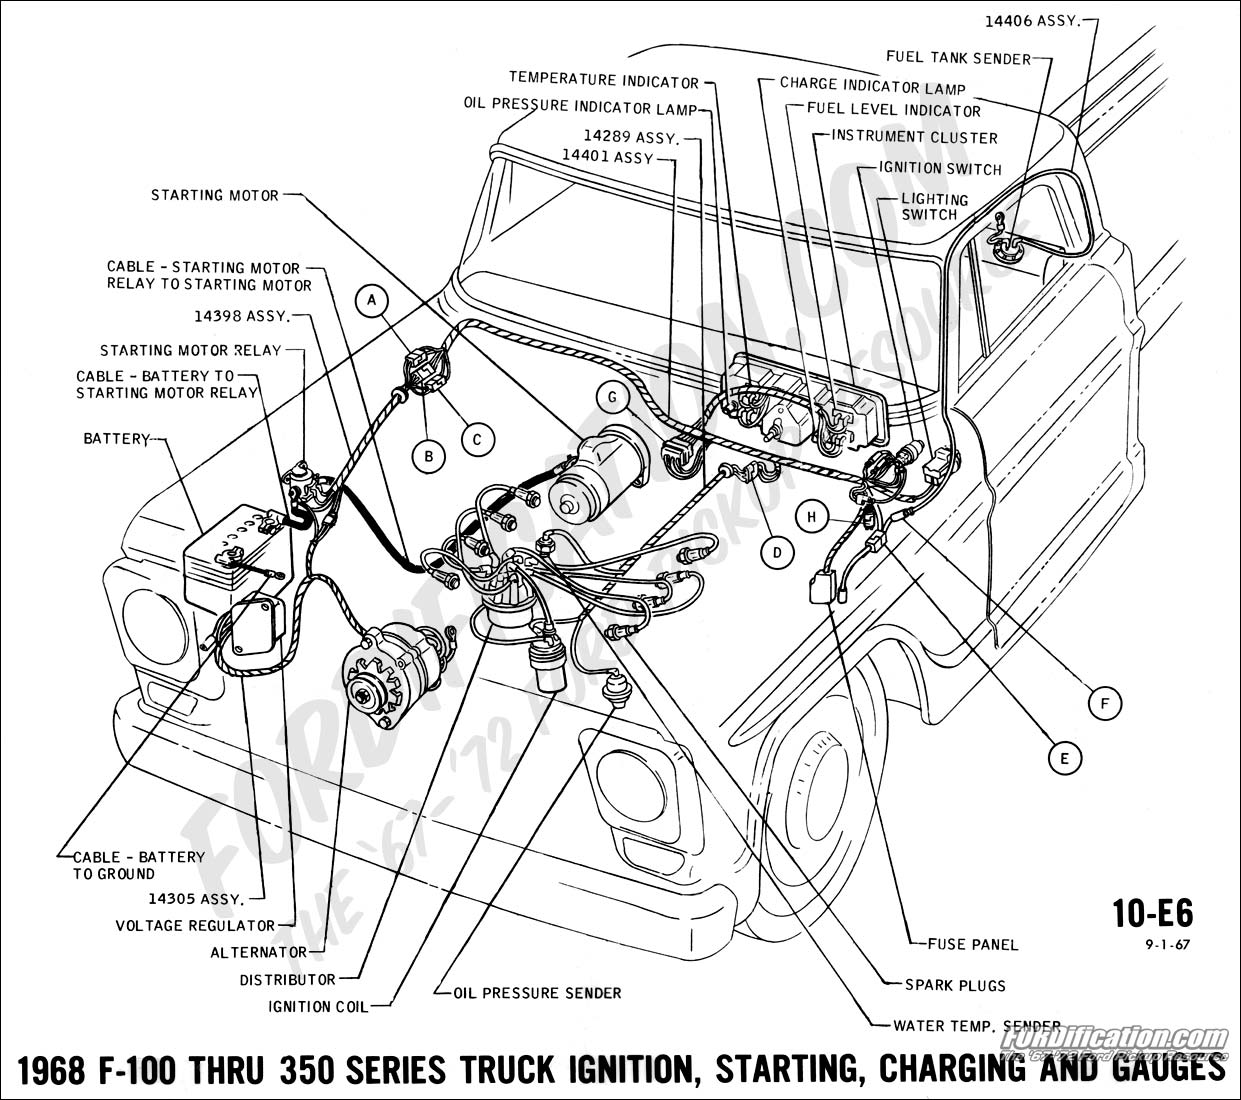 Alt Wiring Diagram For 1986 Dodge Ram Diy Enthusiasts Jeep Comanche Fuse Box Ford Truck Technical Drawings And Schematics Section H Rh Fordification Com Ramcharger 1977 Ignition